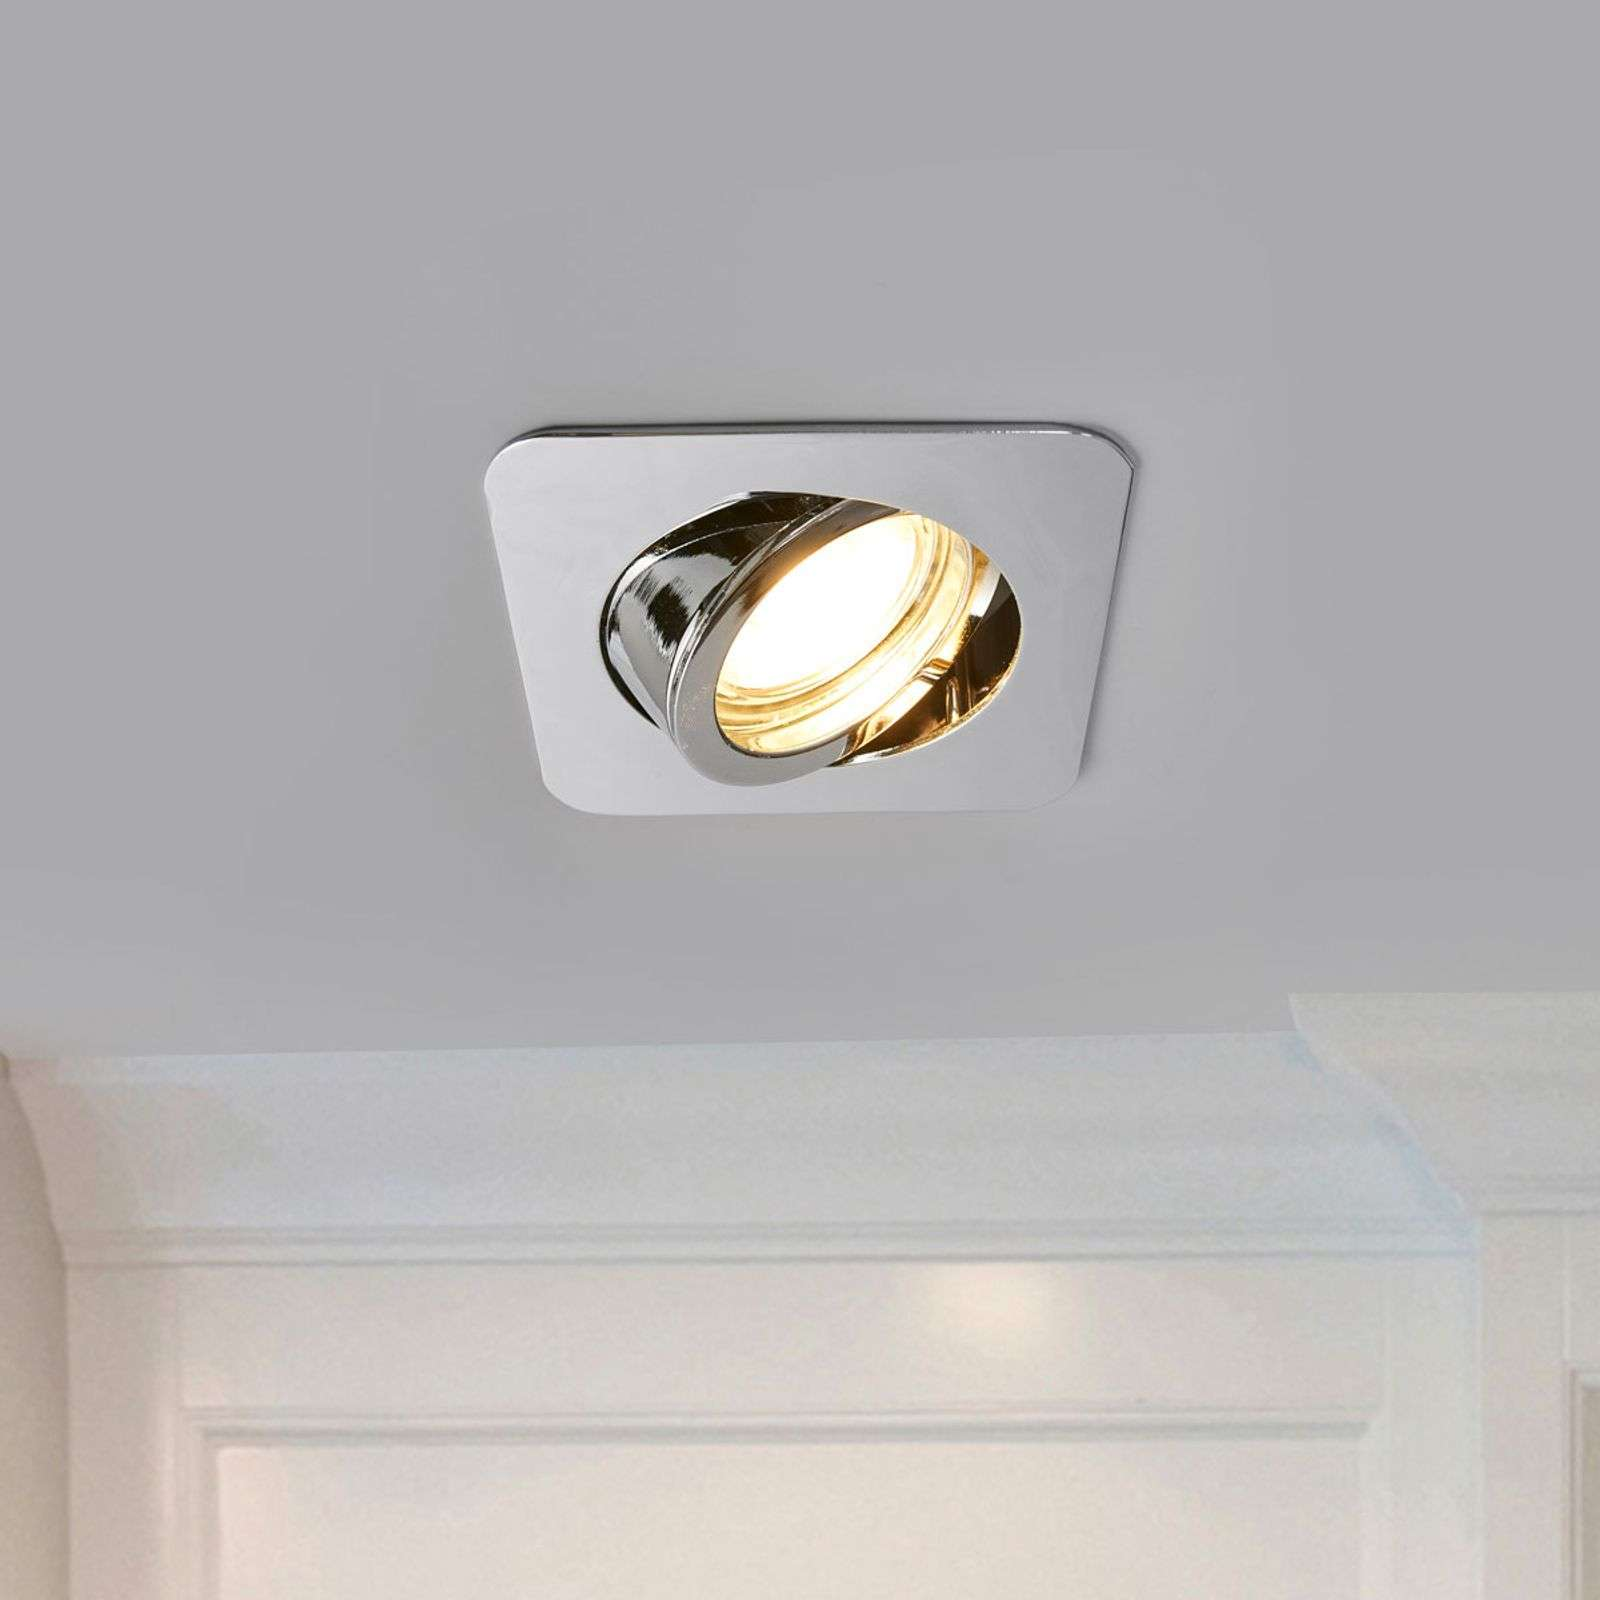 Charna chrome-plated LED recessed light